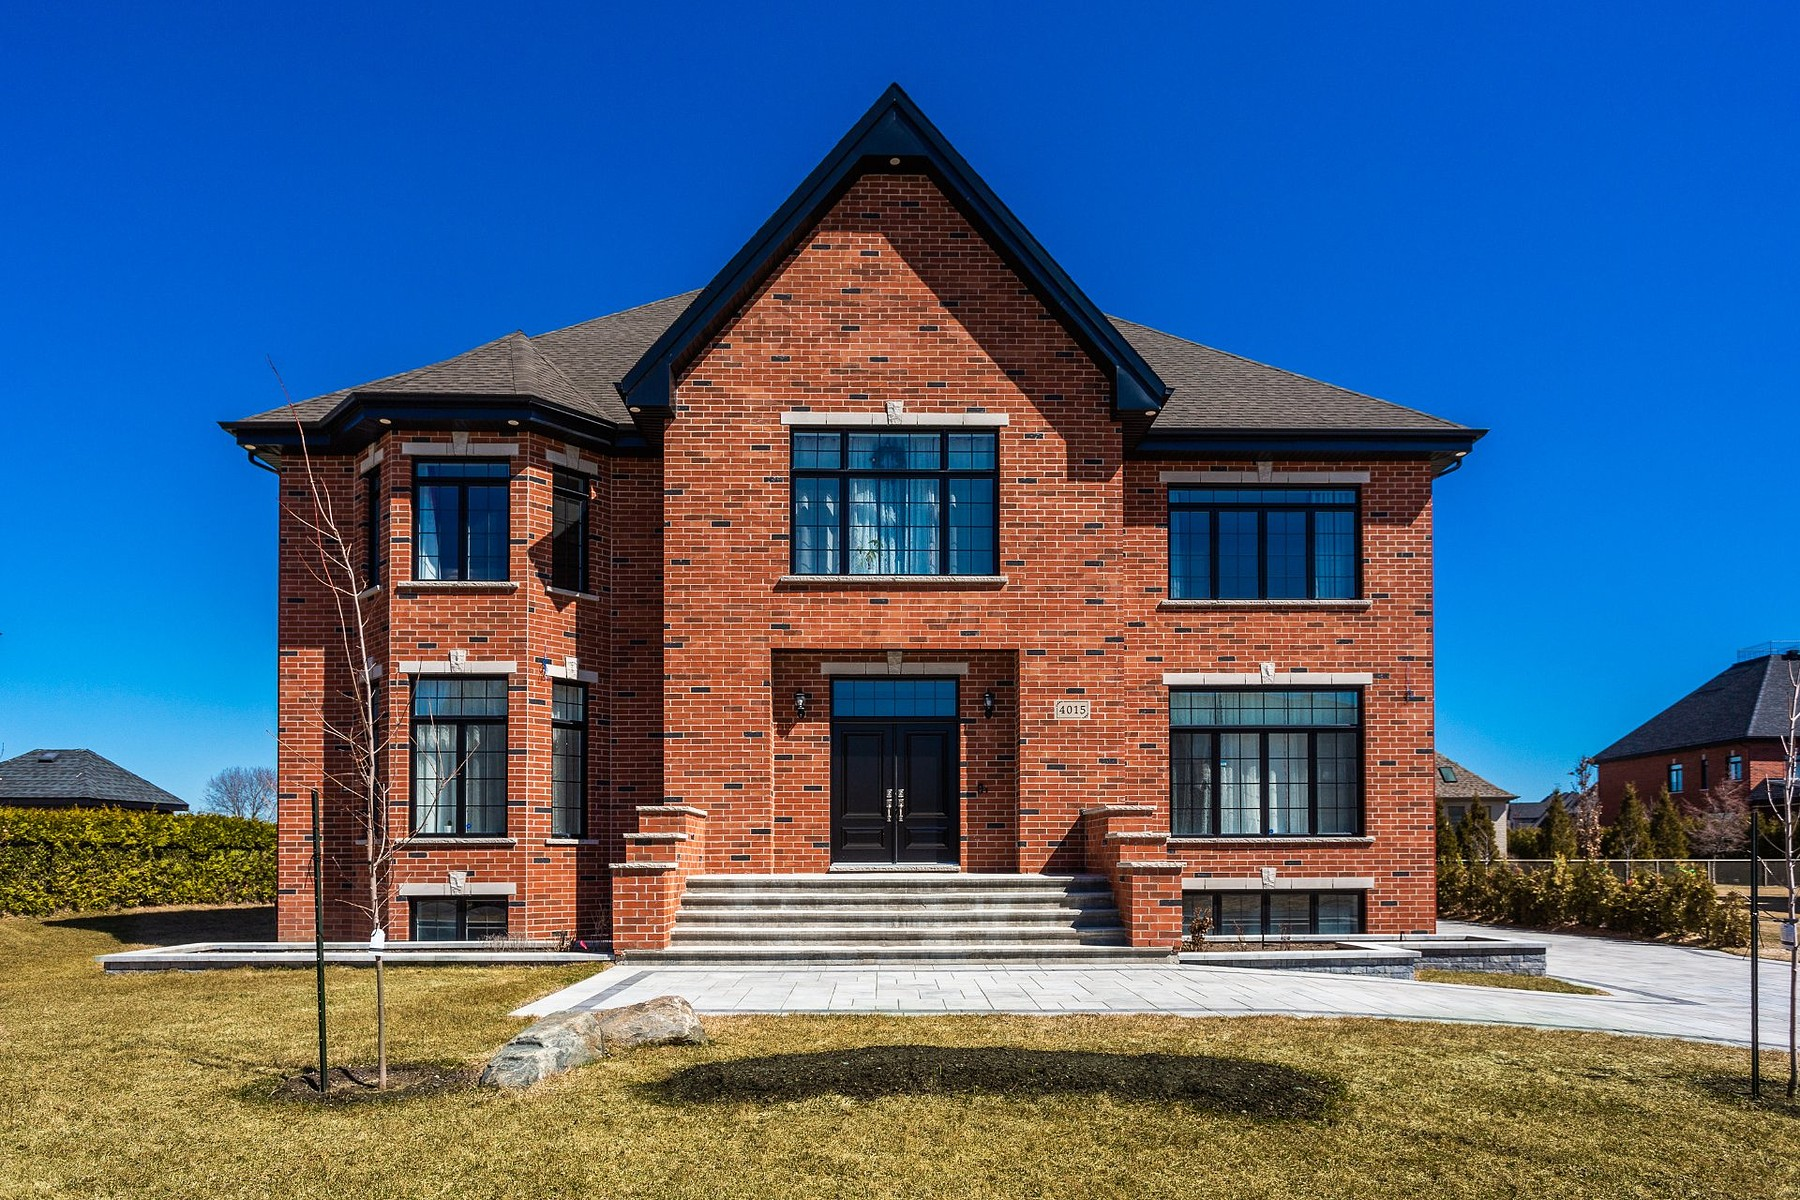 Single Family Homes for Sale at Prestigious new residence 4015 Rue de Lachine Brossard, Quebec J4Y0J1 Canada